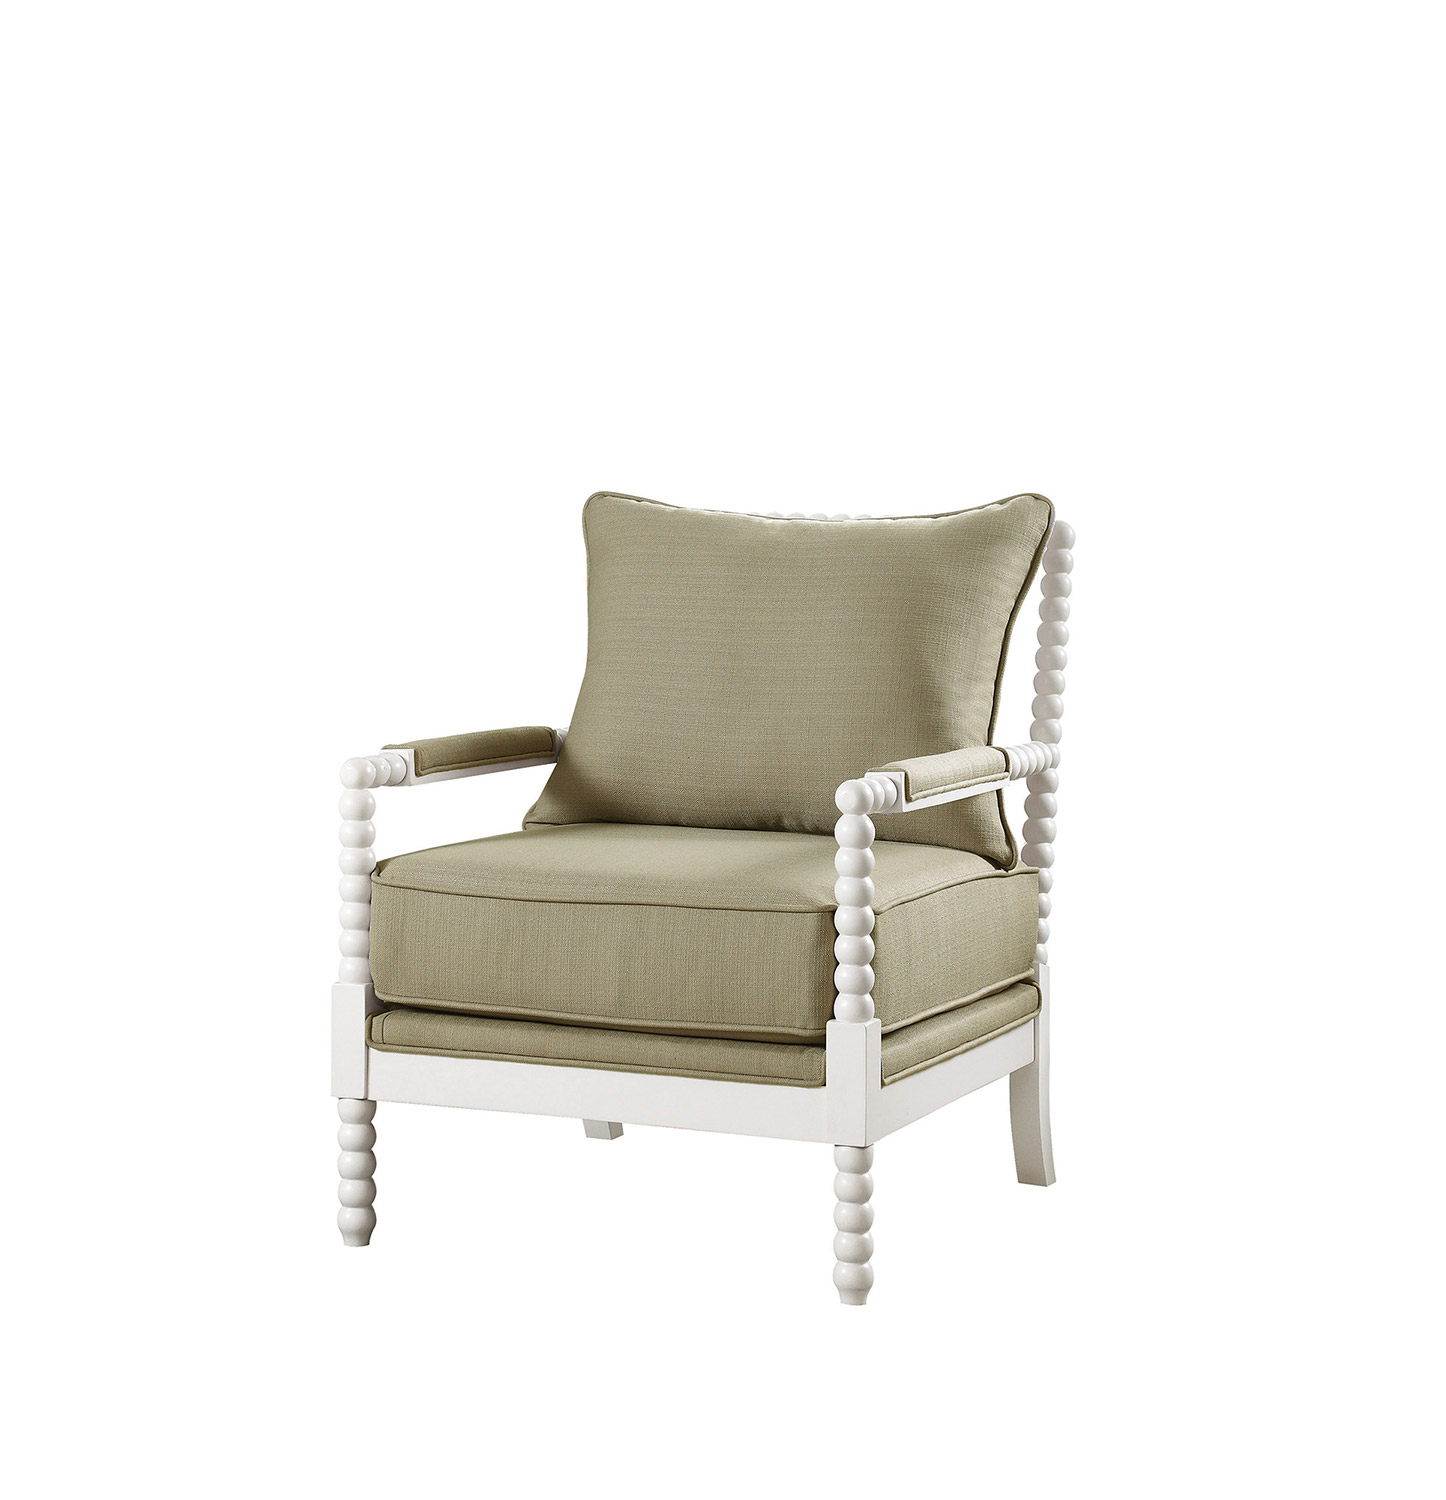 Coaster 903825 Accent Chair - Beige